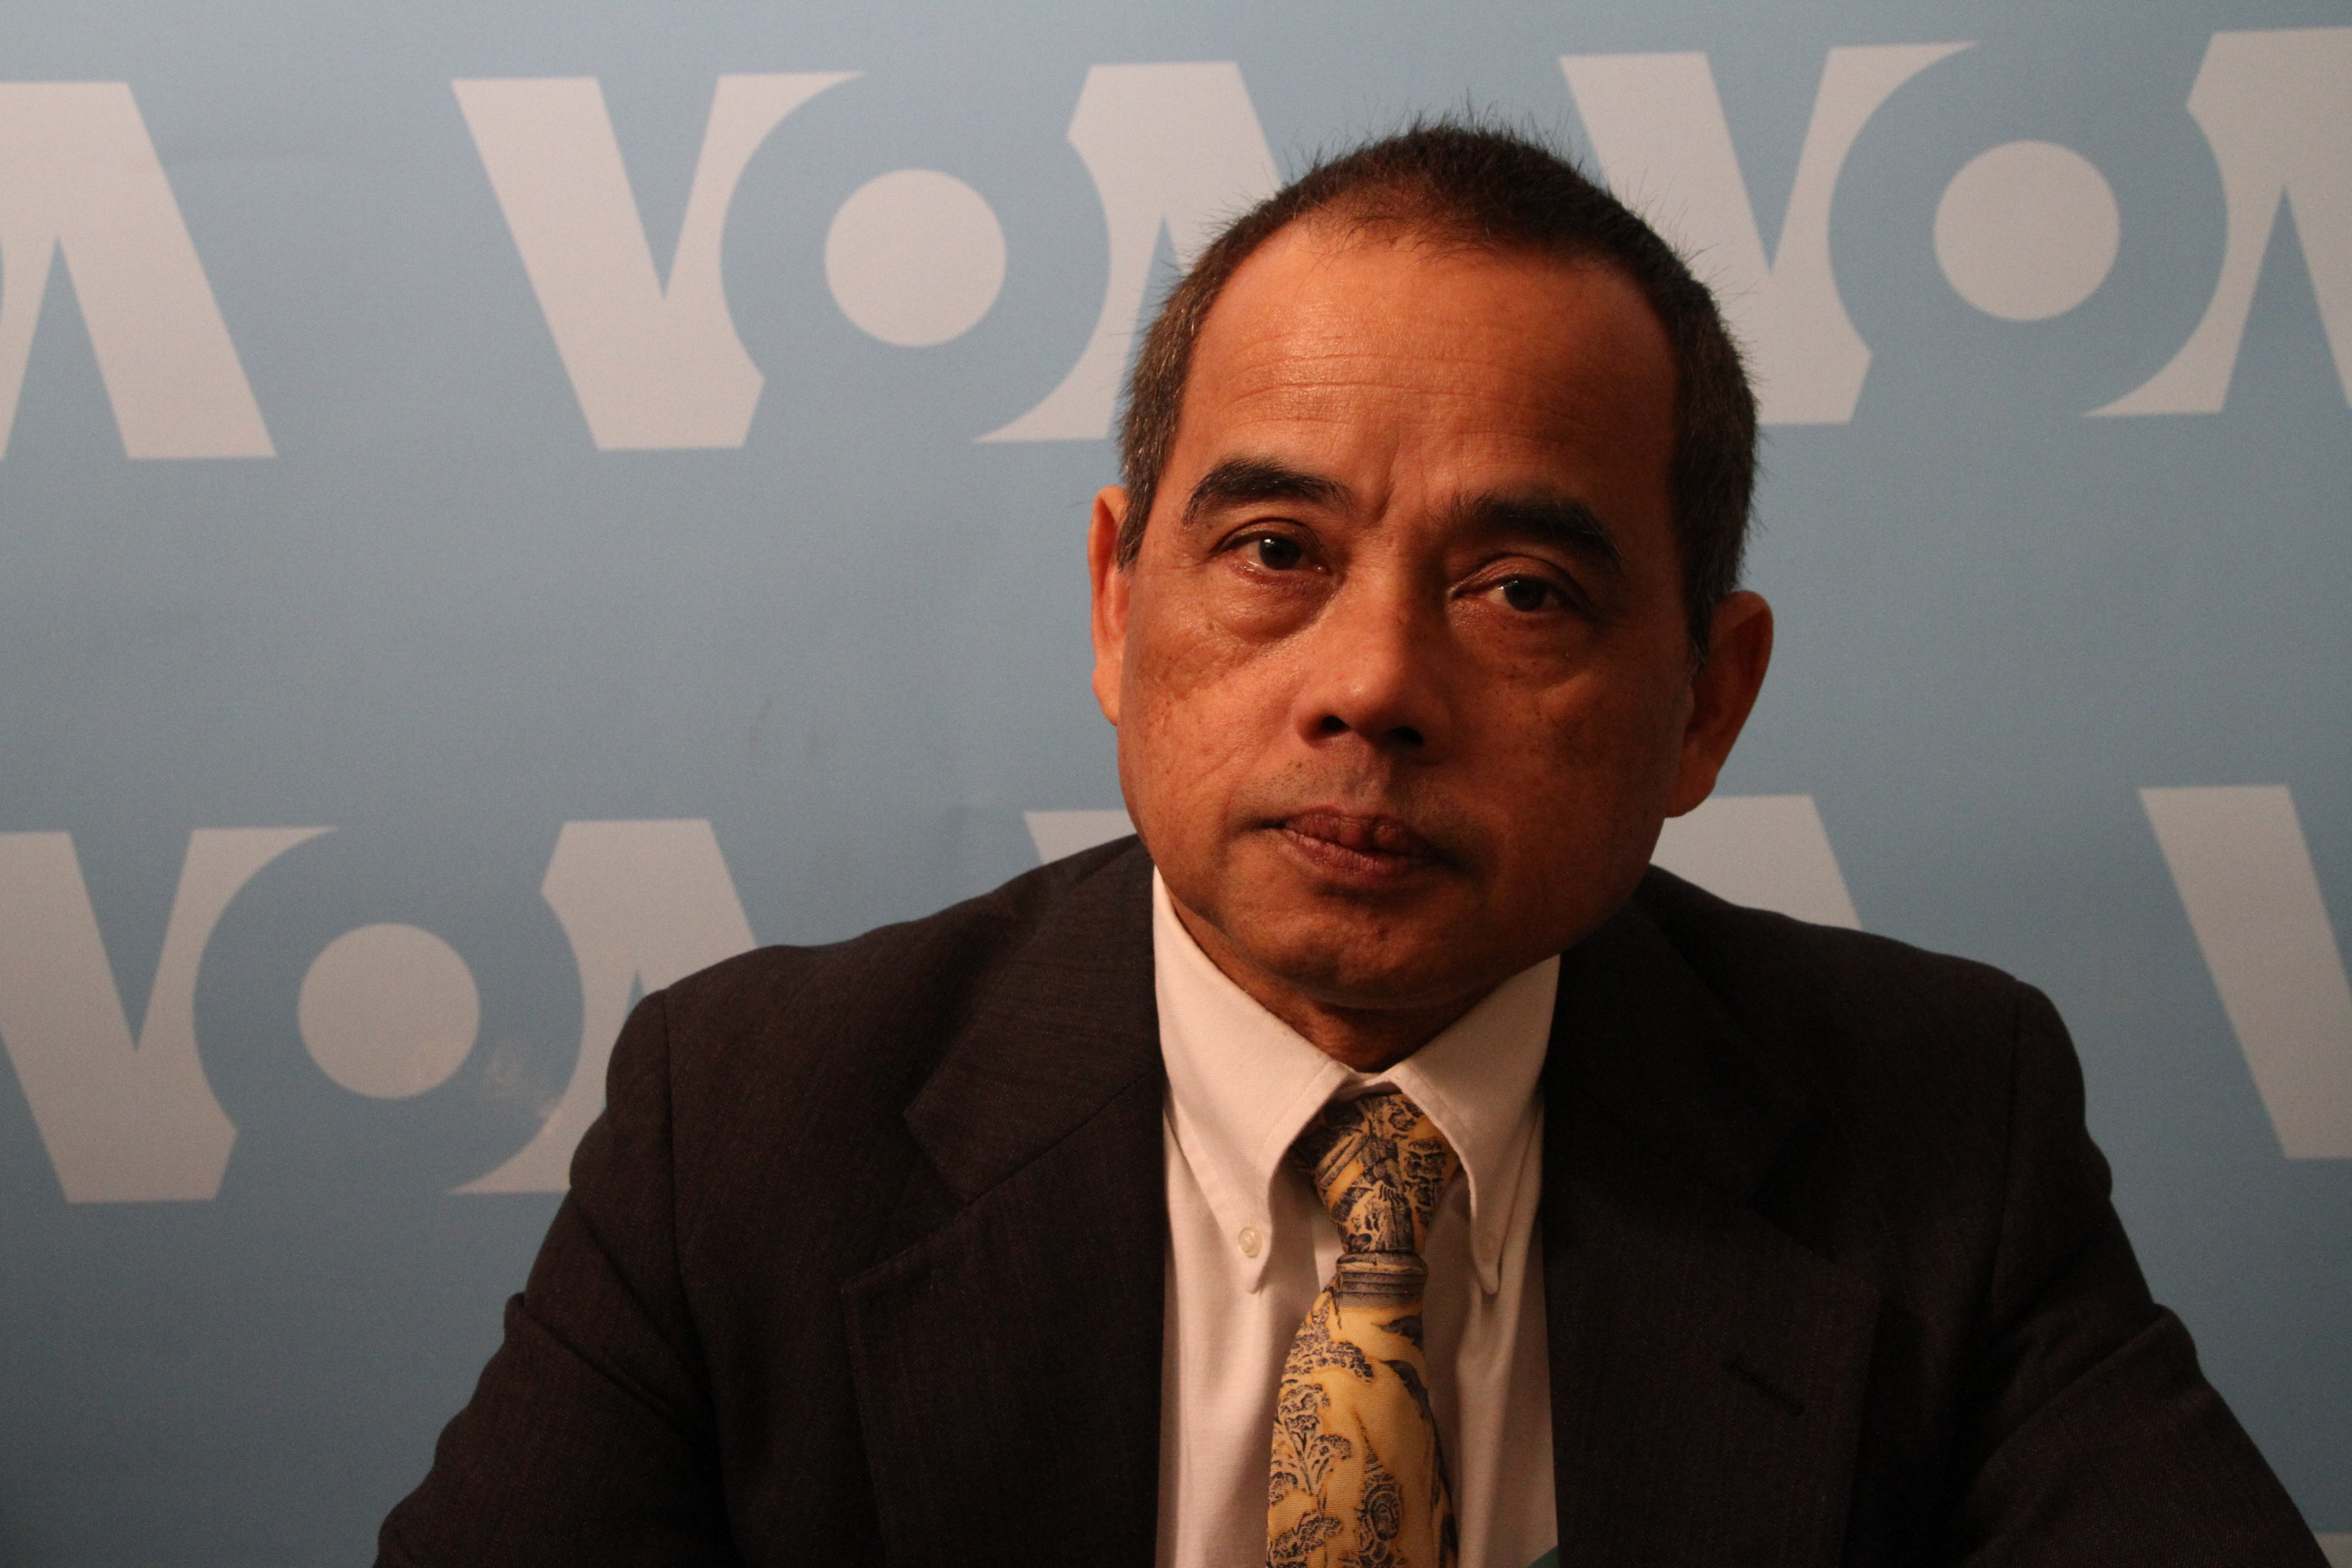 Uong Rithy,the newly-elected head of CNRP party  based in the United States, is in Washington DC to talk to supporters and U.S. diplomats about situations in Cambodia, on February 23, 2017. Uong is the first Cambodian American elected to the City Cou...